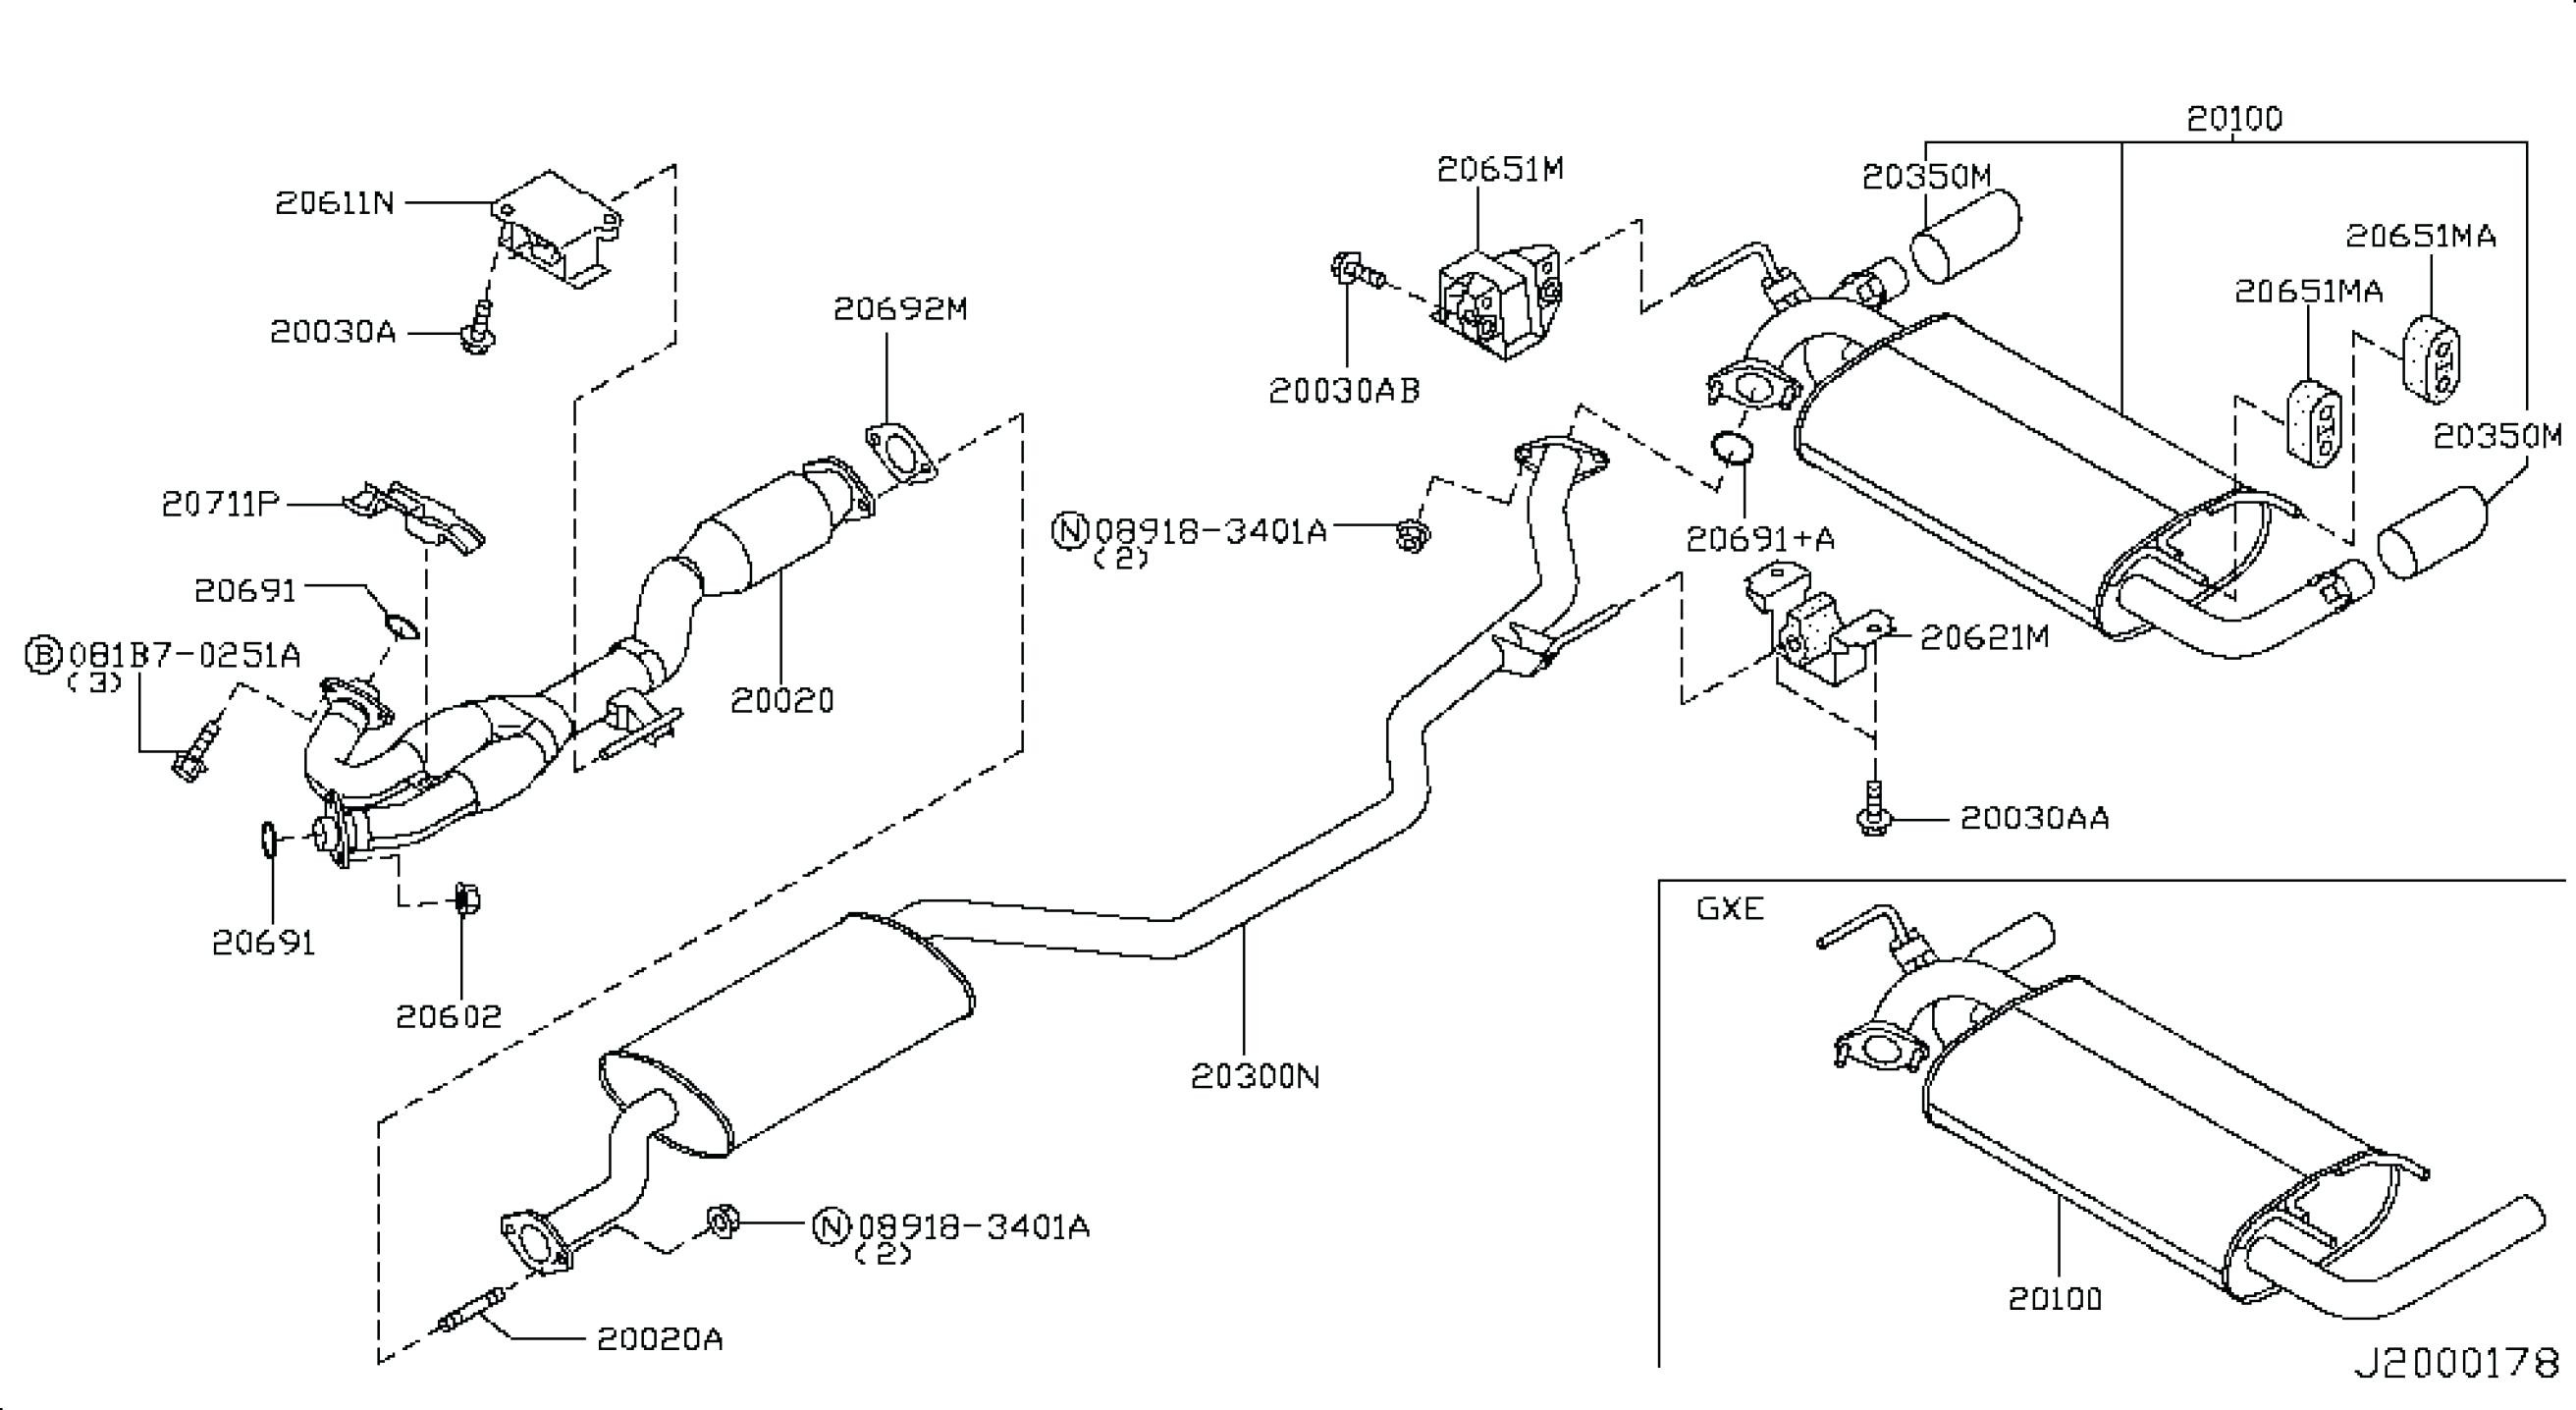 2001 Subaru Outback Exhaust System Diagram